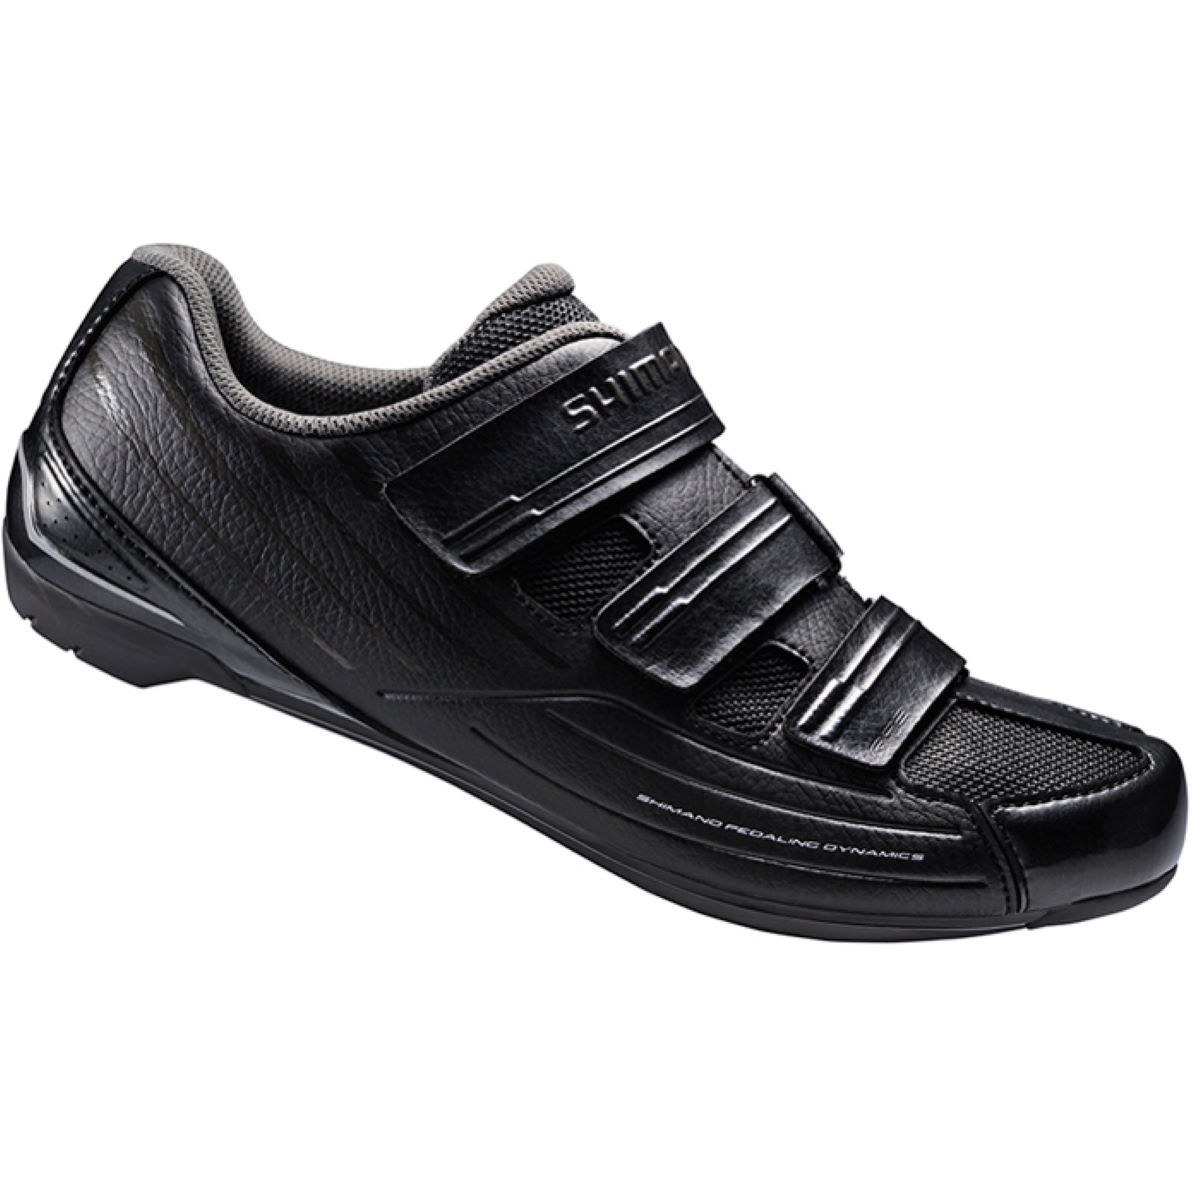 Shimano RP2 SPD-SL Road Shoes - 43 Black | Road Shoes